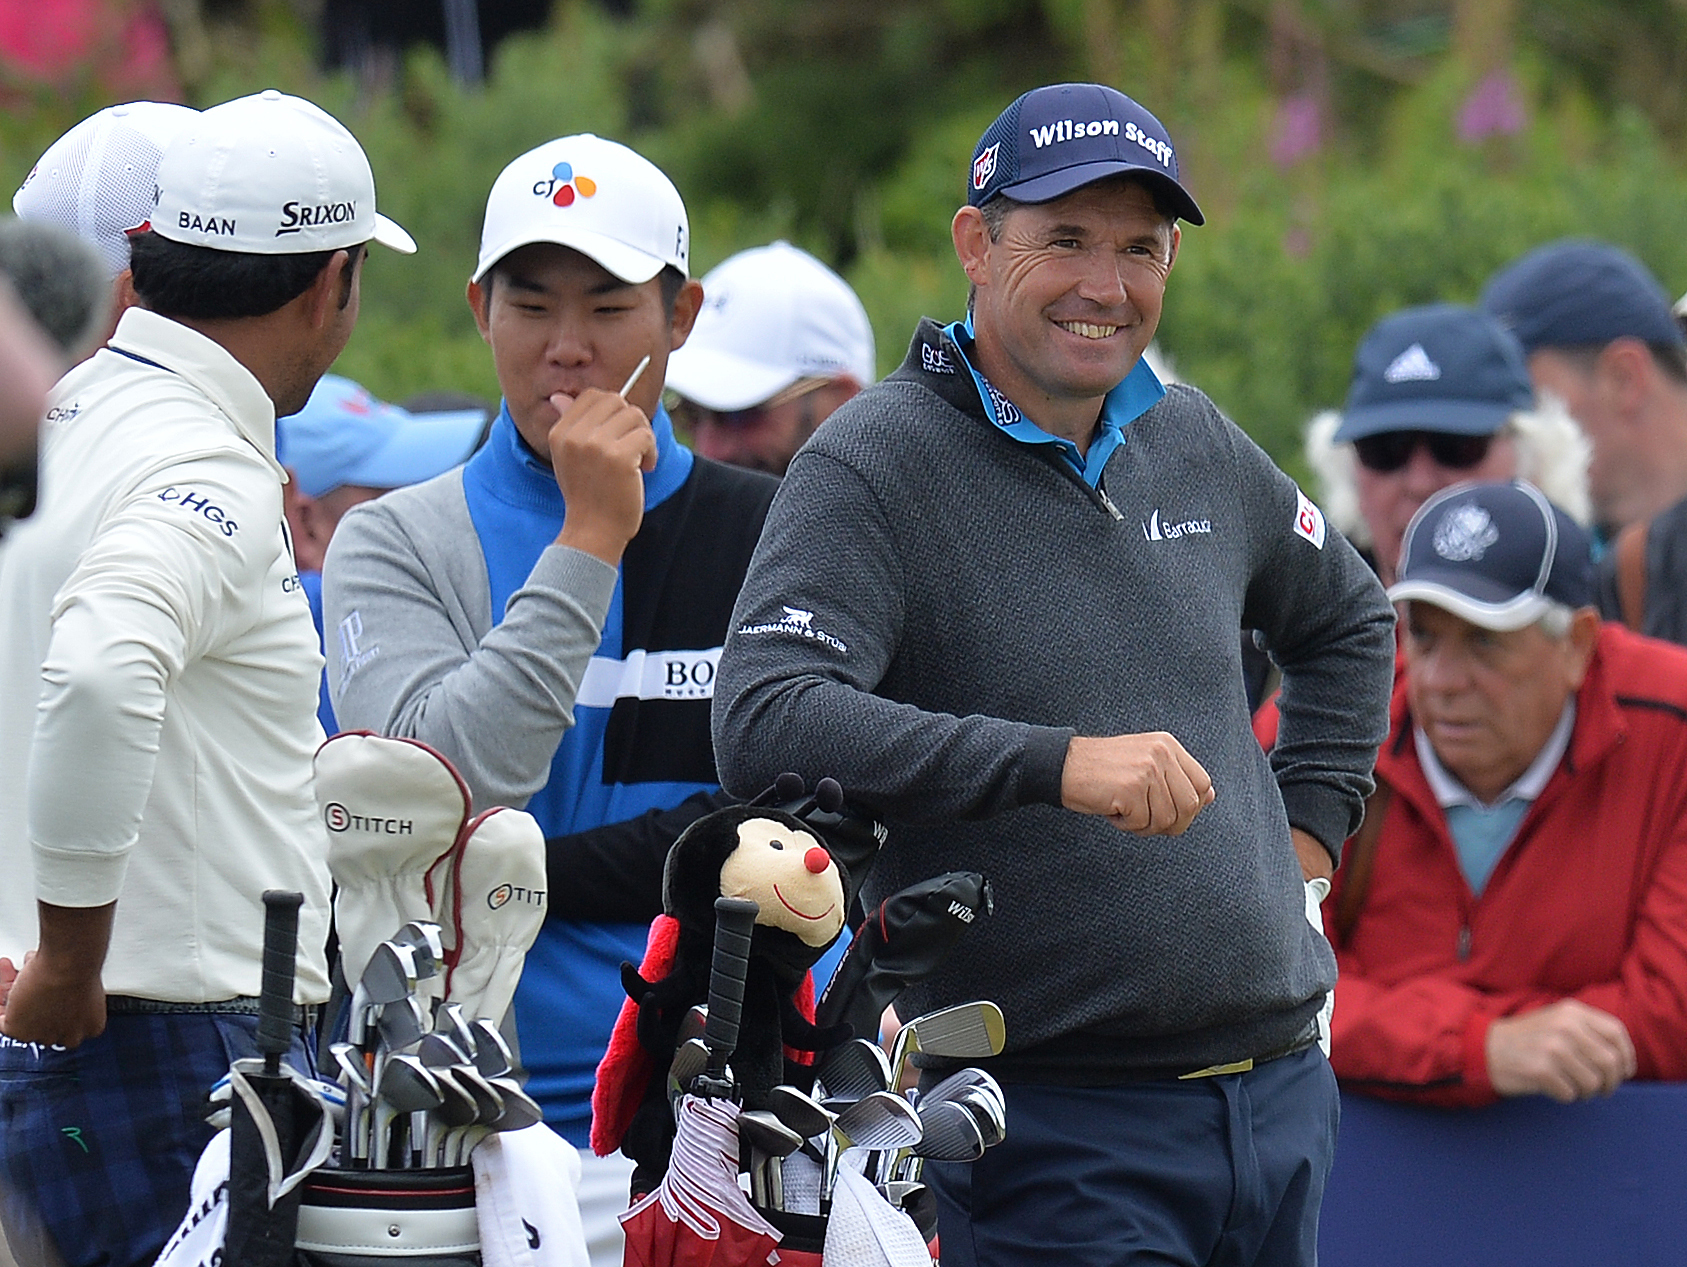 Padraig Harrington shares a joke at the 5th tee during day two of the 2017 Aberdeen Asset Management Scottish Open.